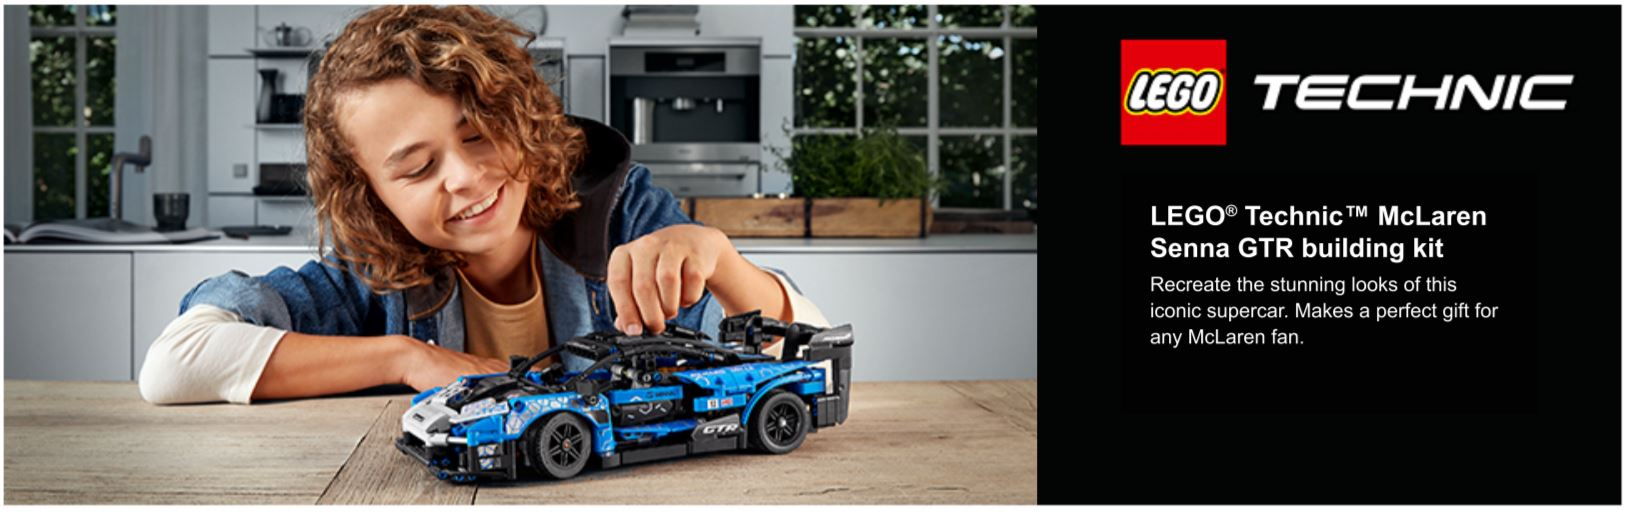 child playing with lego car model